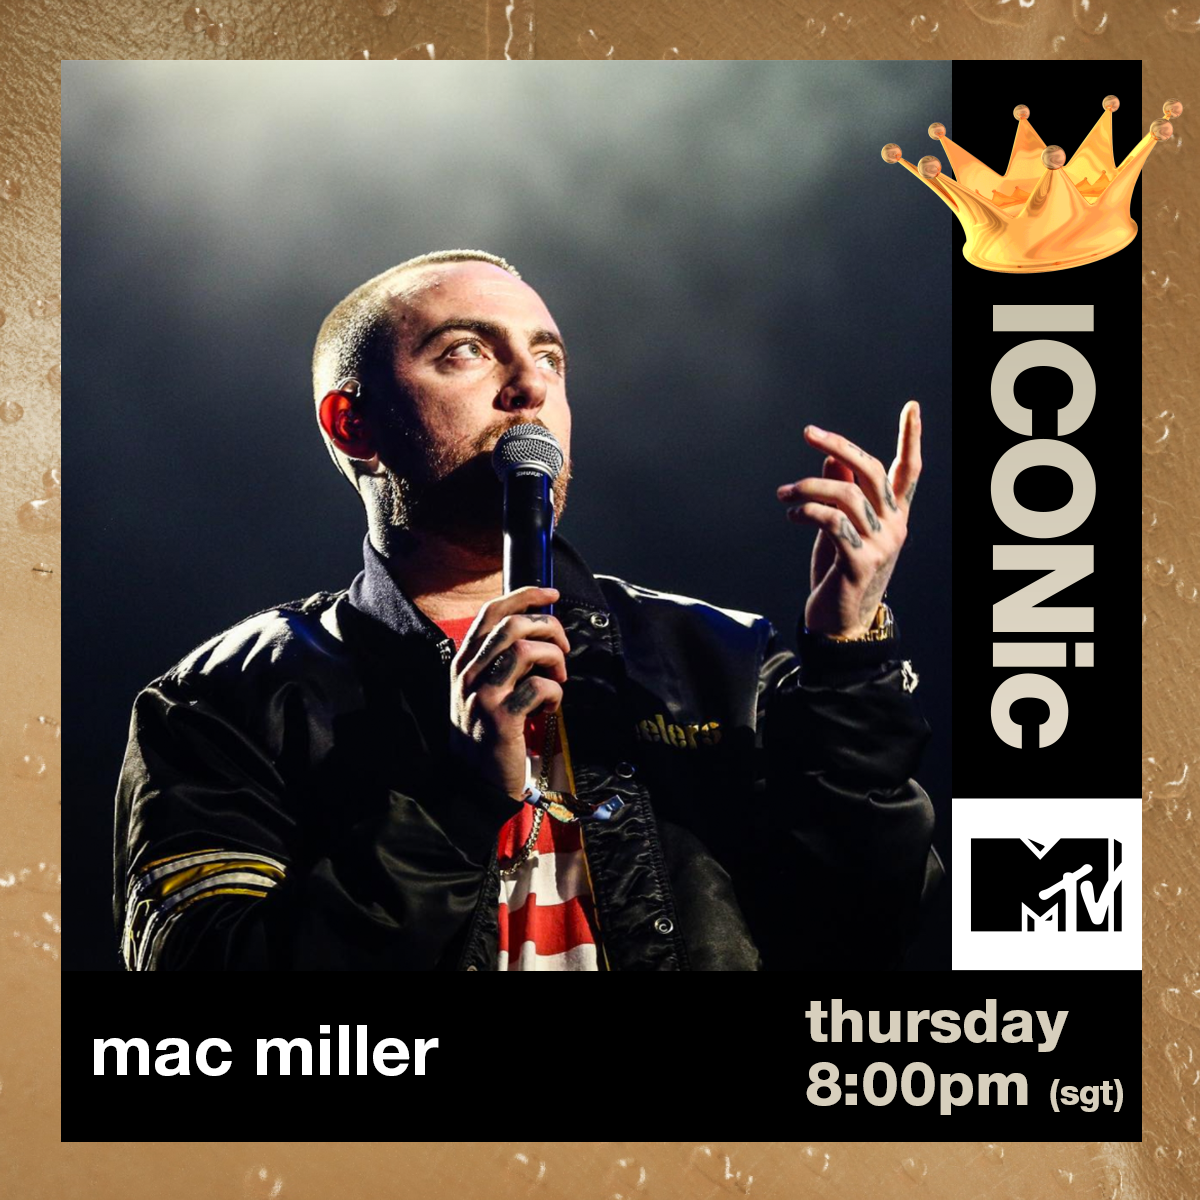 Our ICONic playlist this week goes to @MacMiller. Thank you for sharing your gift with us ❤️